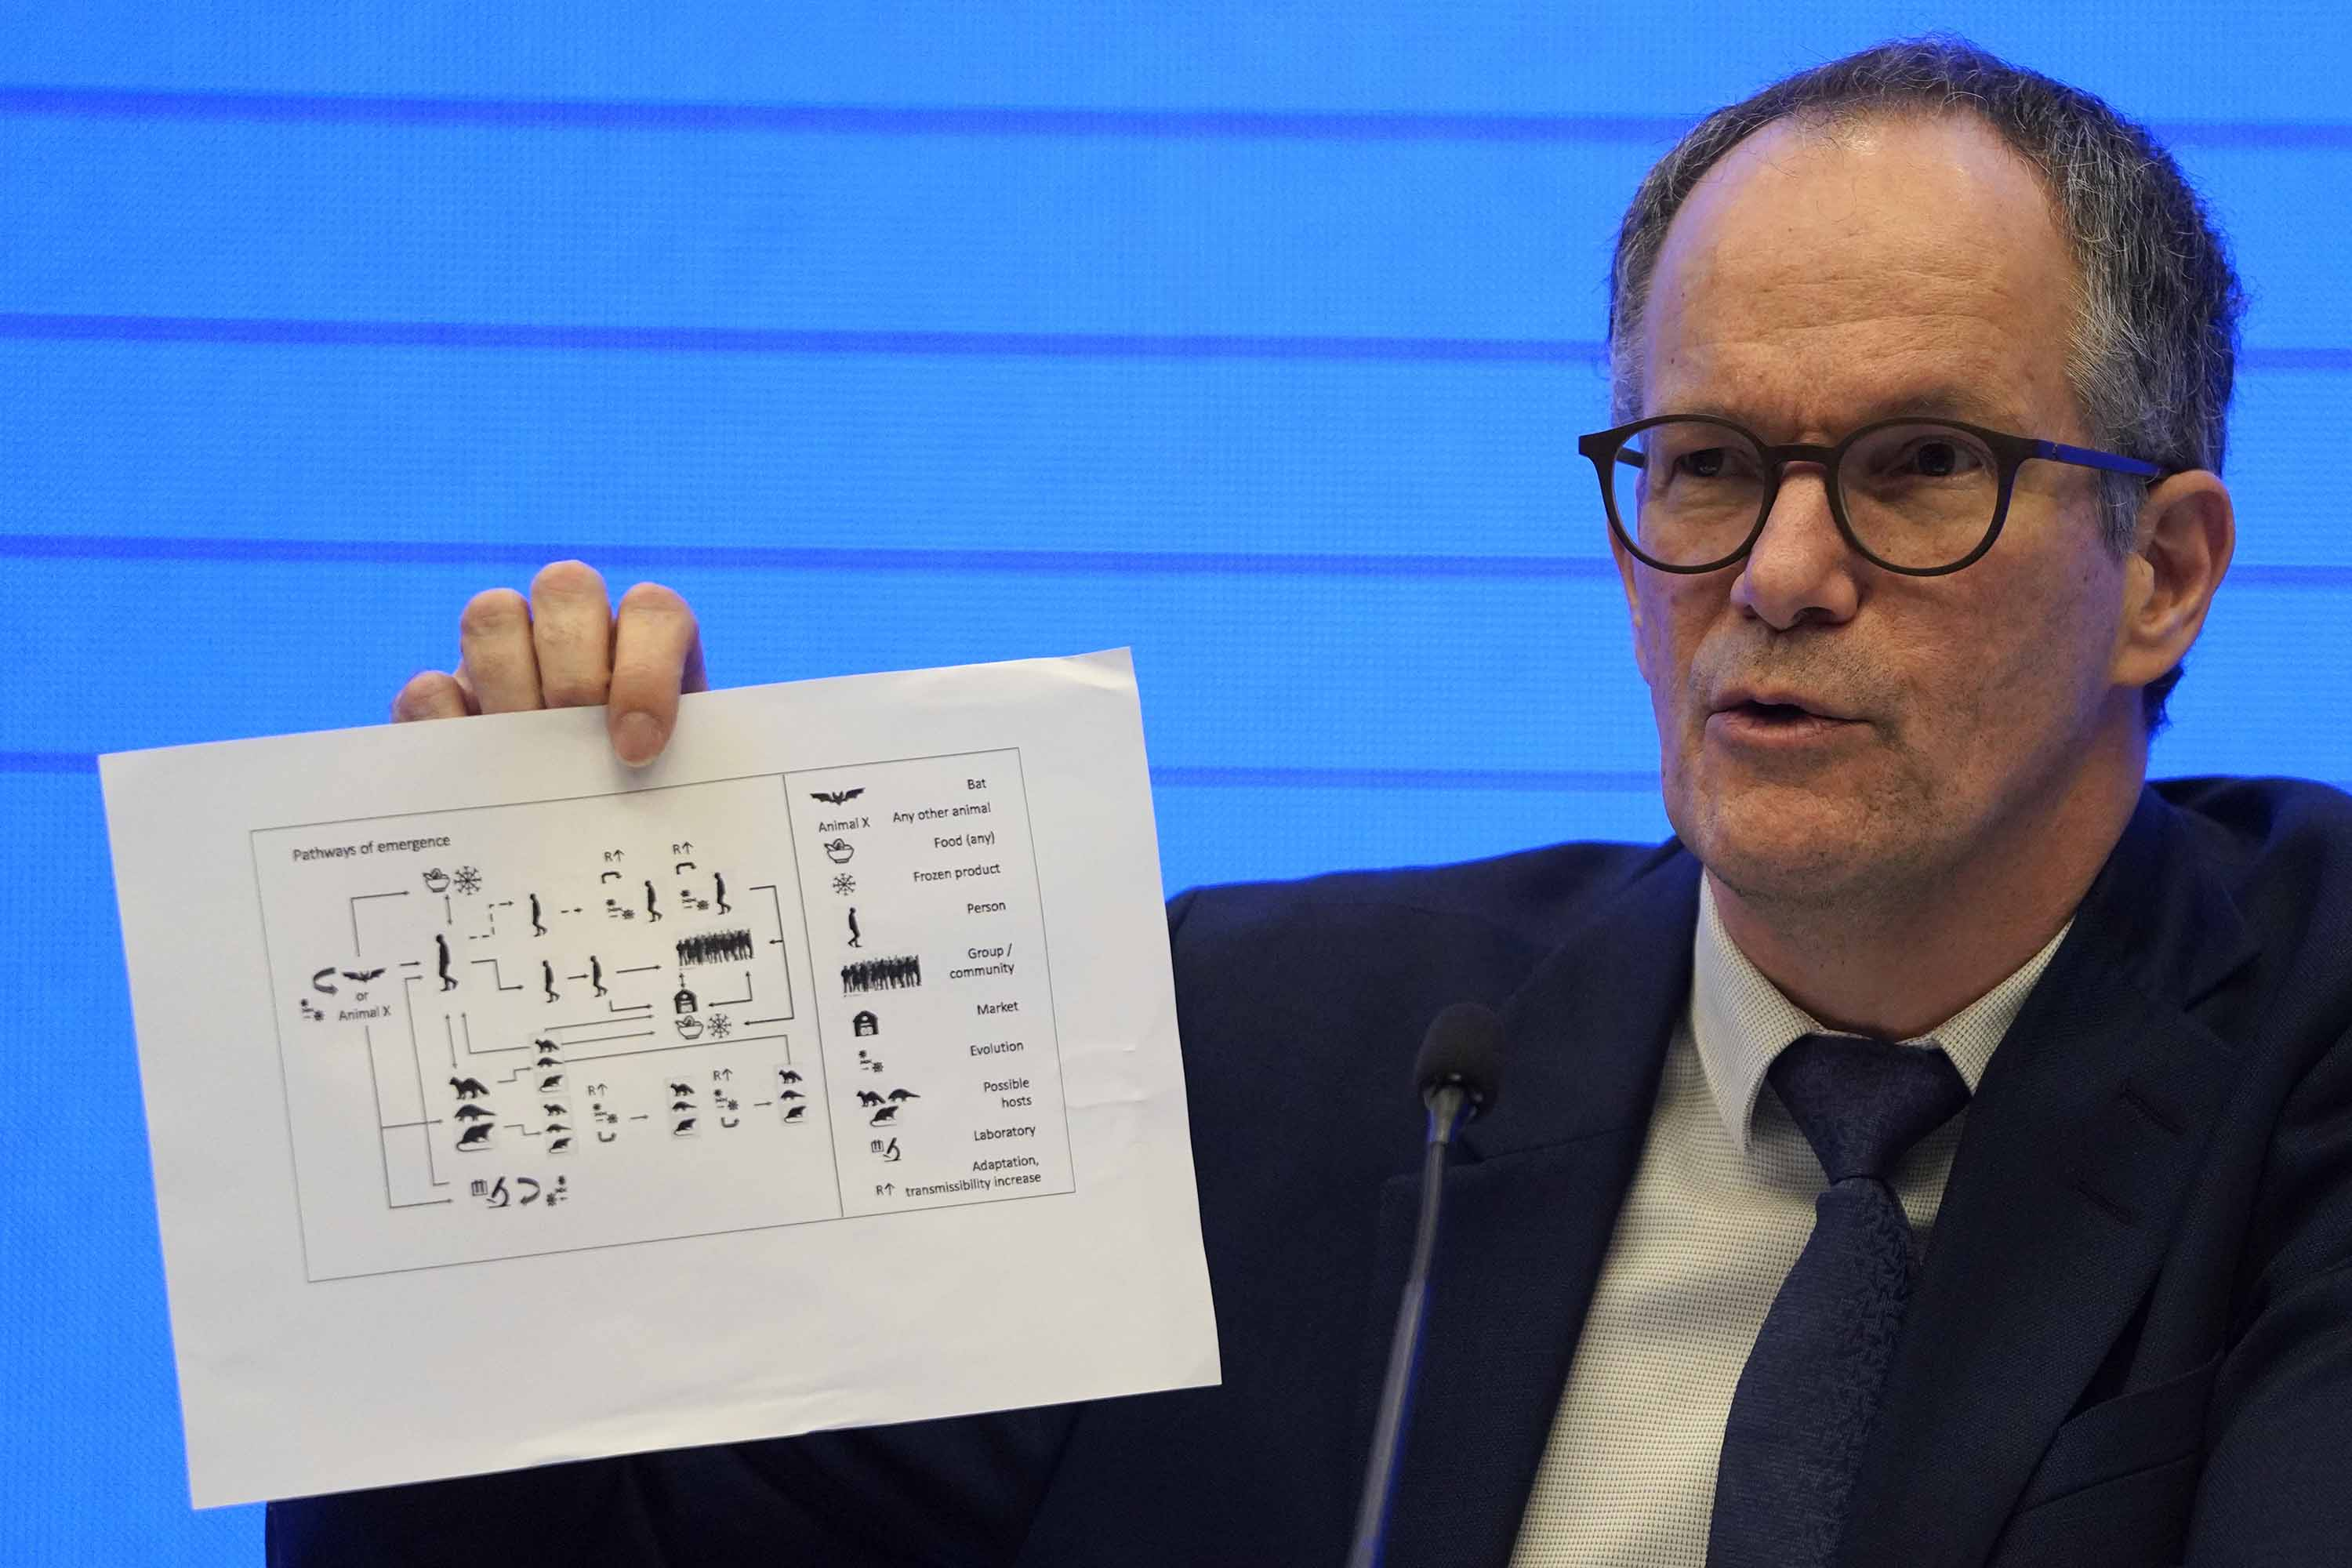 Peter Ben Embarek of the World Health Organization holds up a chart showing possible pathways of transmission of the coronavirus to humans, during a press conference in Wuhan, China, on February 9.